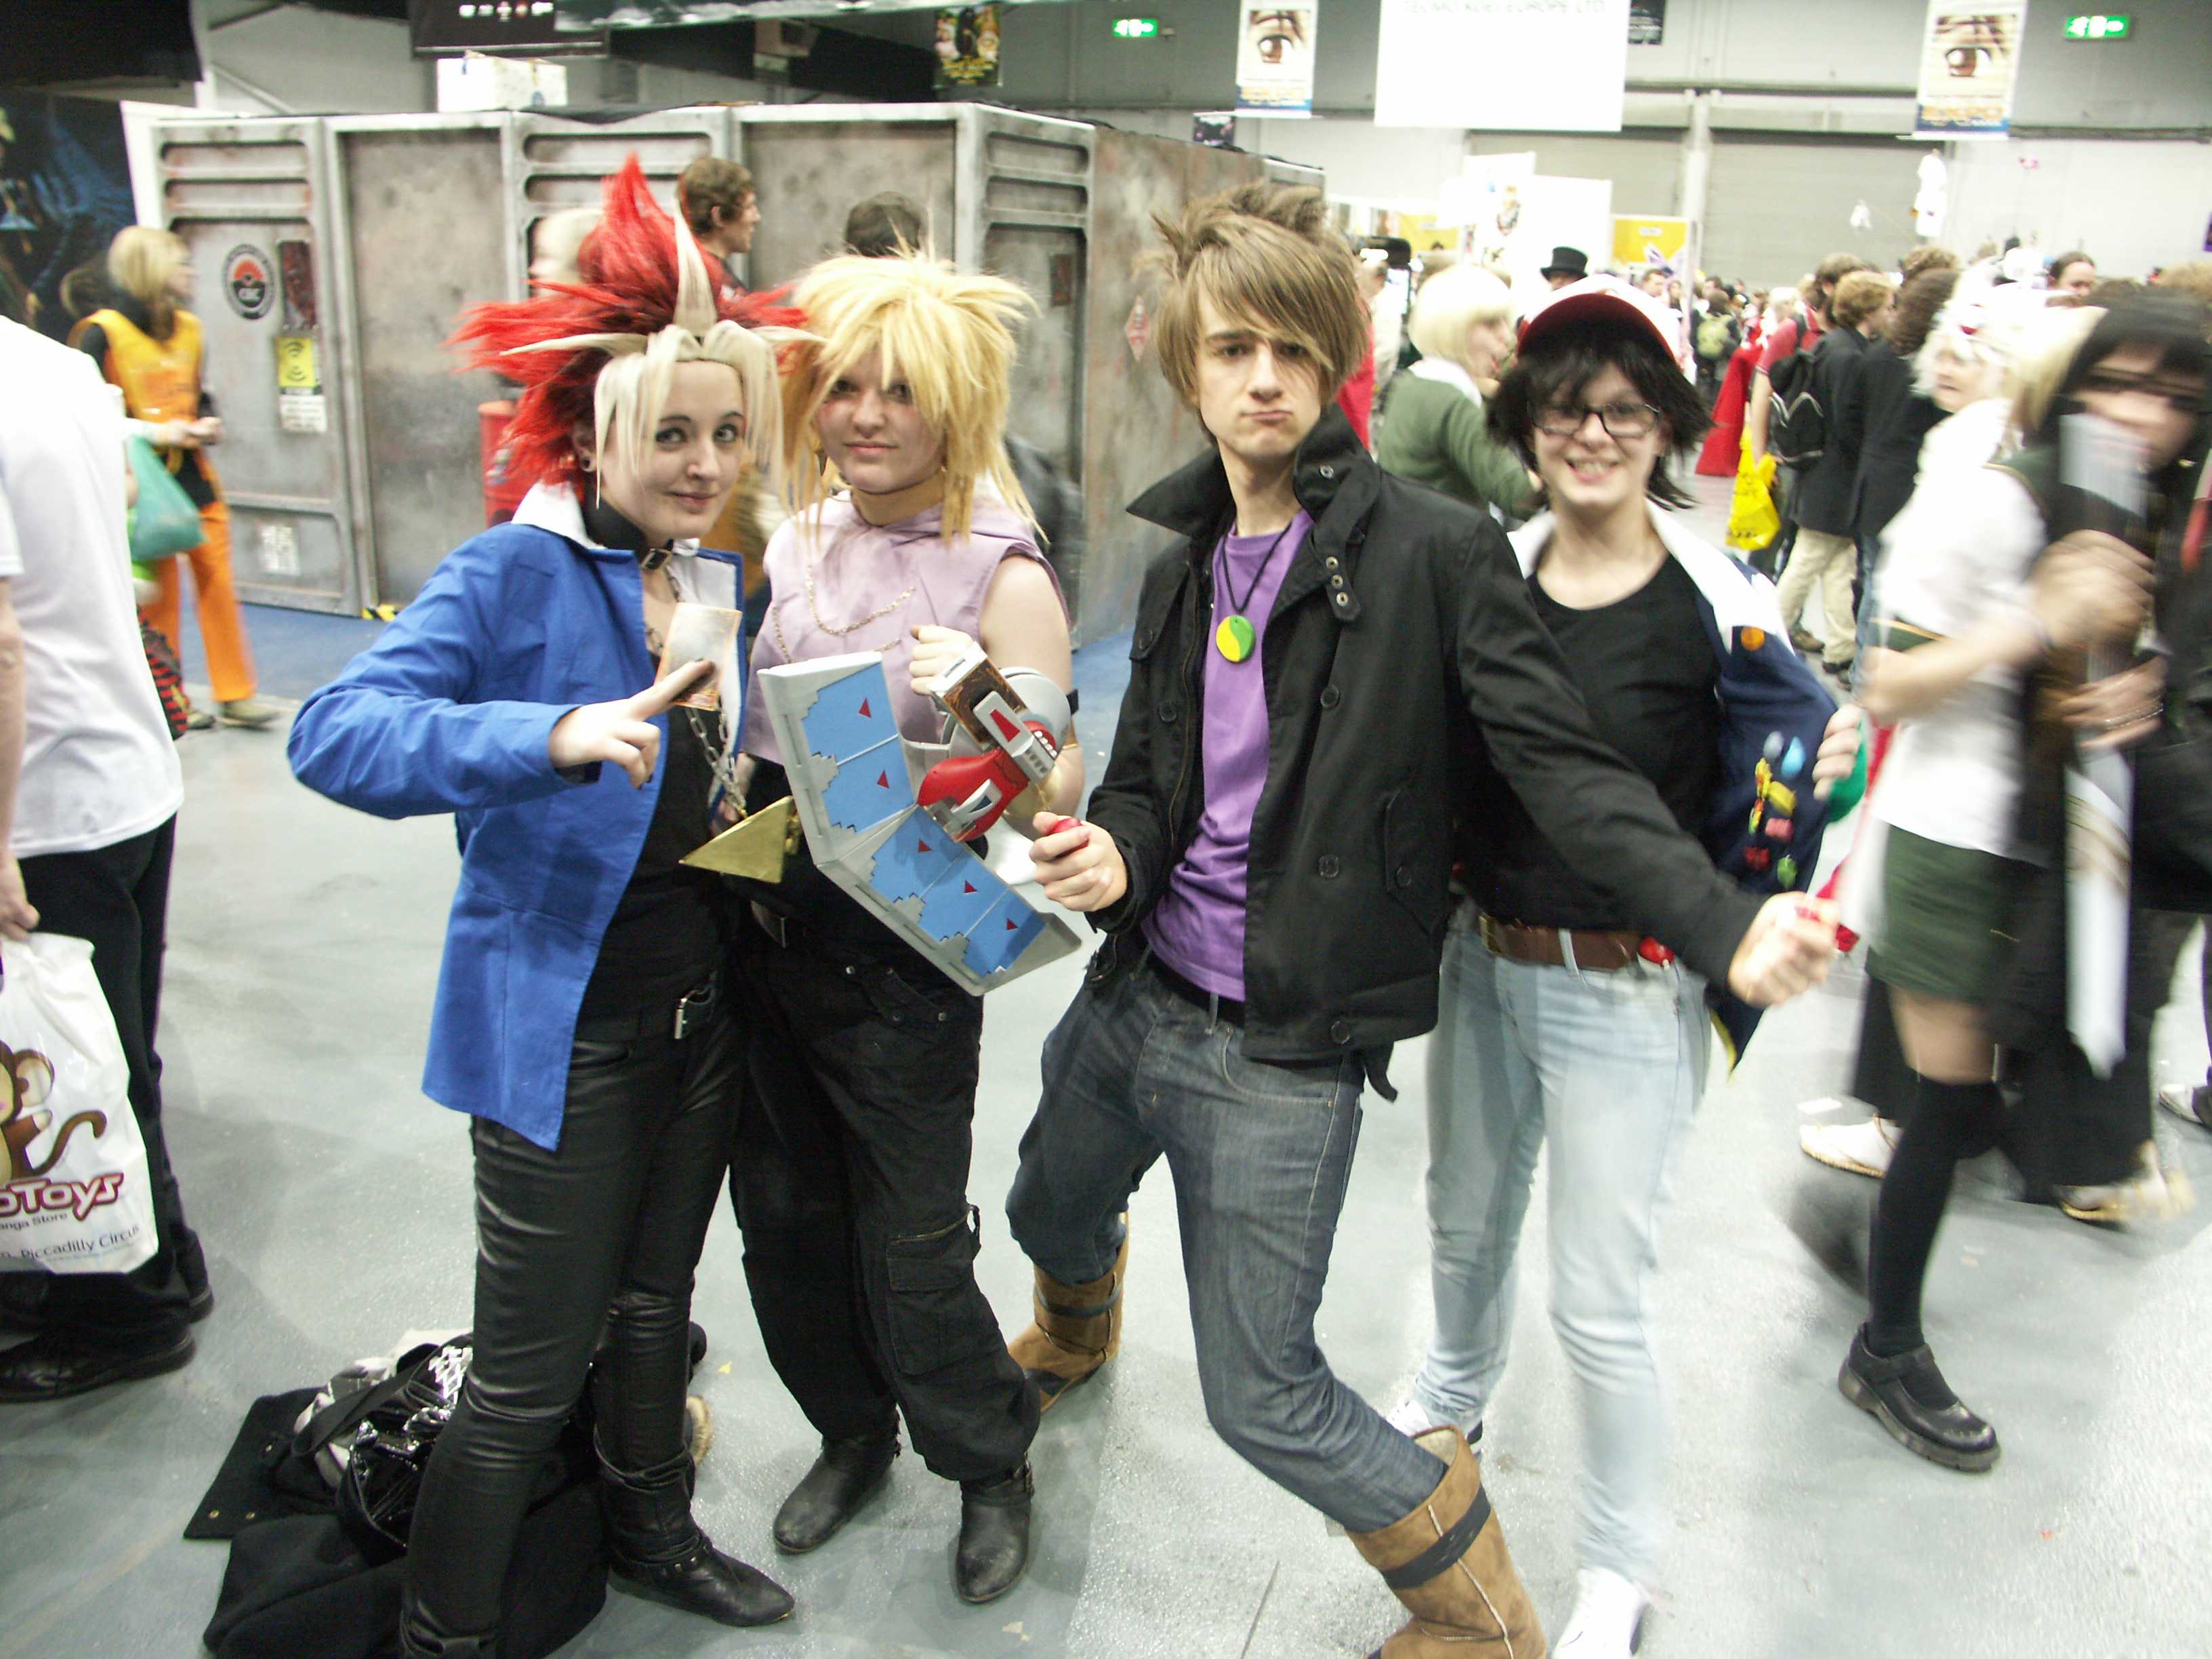 ... Yu-gi-oh and Pokemon group Telford MCM 2010 by The-four  sc 1 st  The-four-armed-man - DeviantArt & Yu-gi-oh and Pokemon group Telford MCM 2010 by The-four-armed-man ...